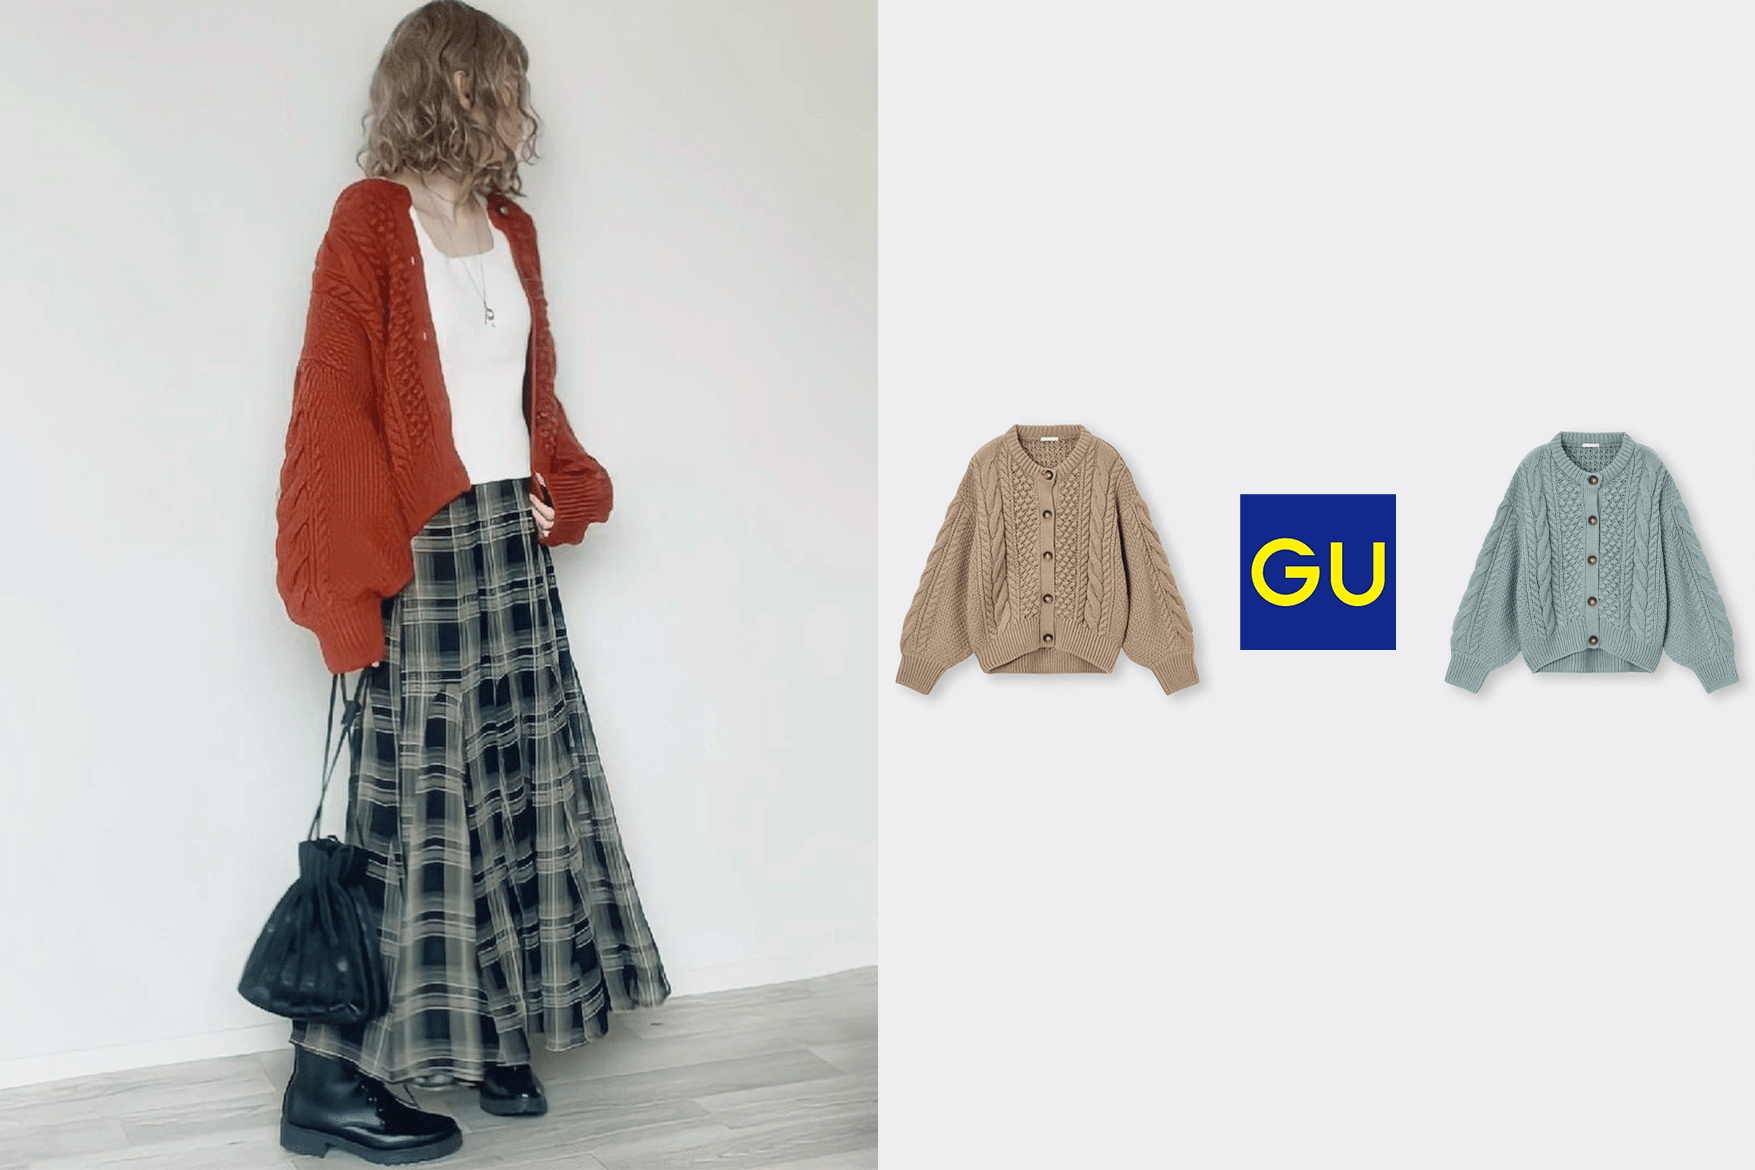 Why GU knit cardigan catch Japanese girls' attention every year?